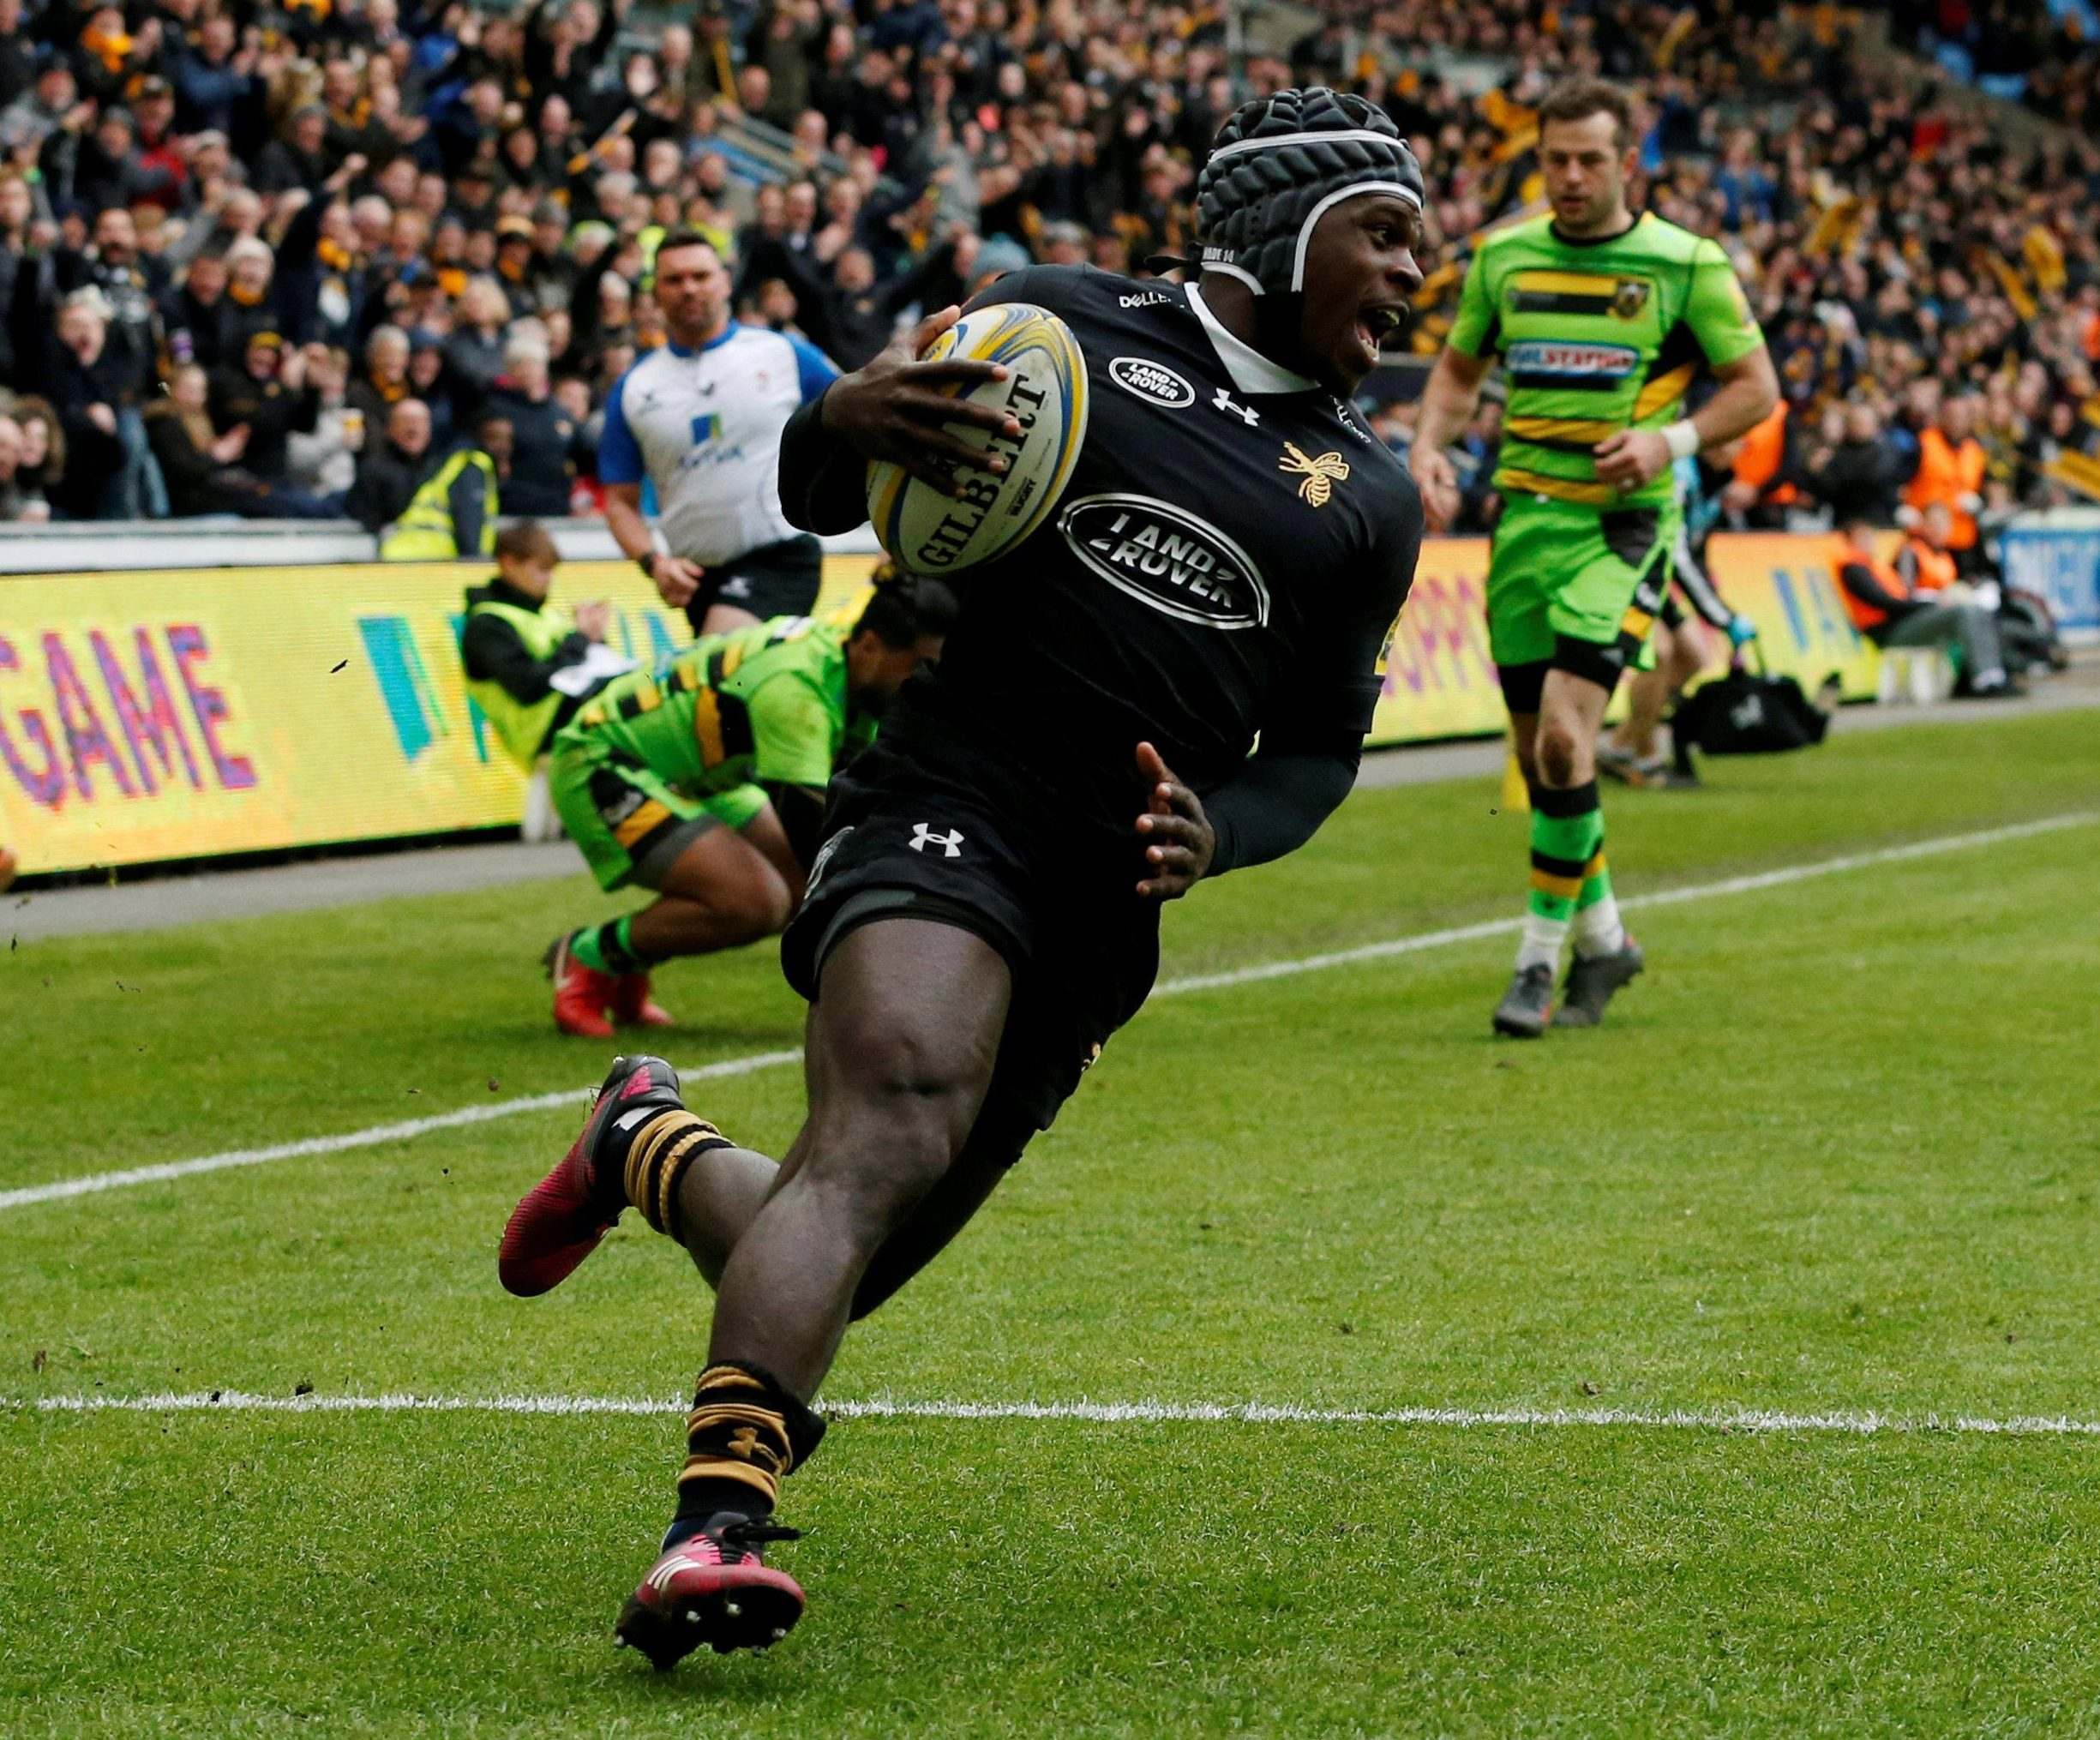 Christian Wade is the third-highest scorer ever in Premiership history